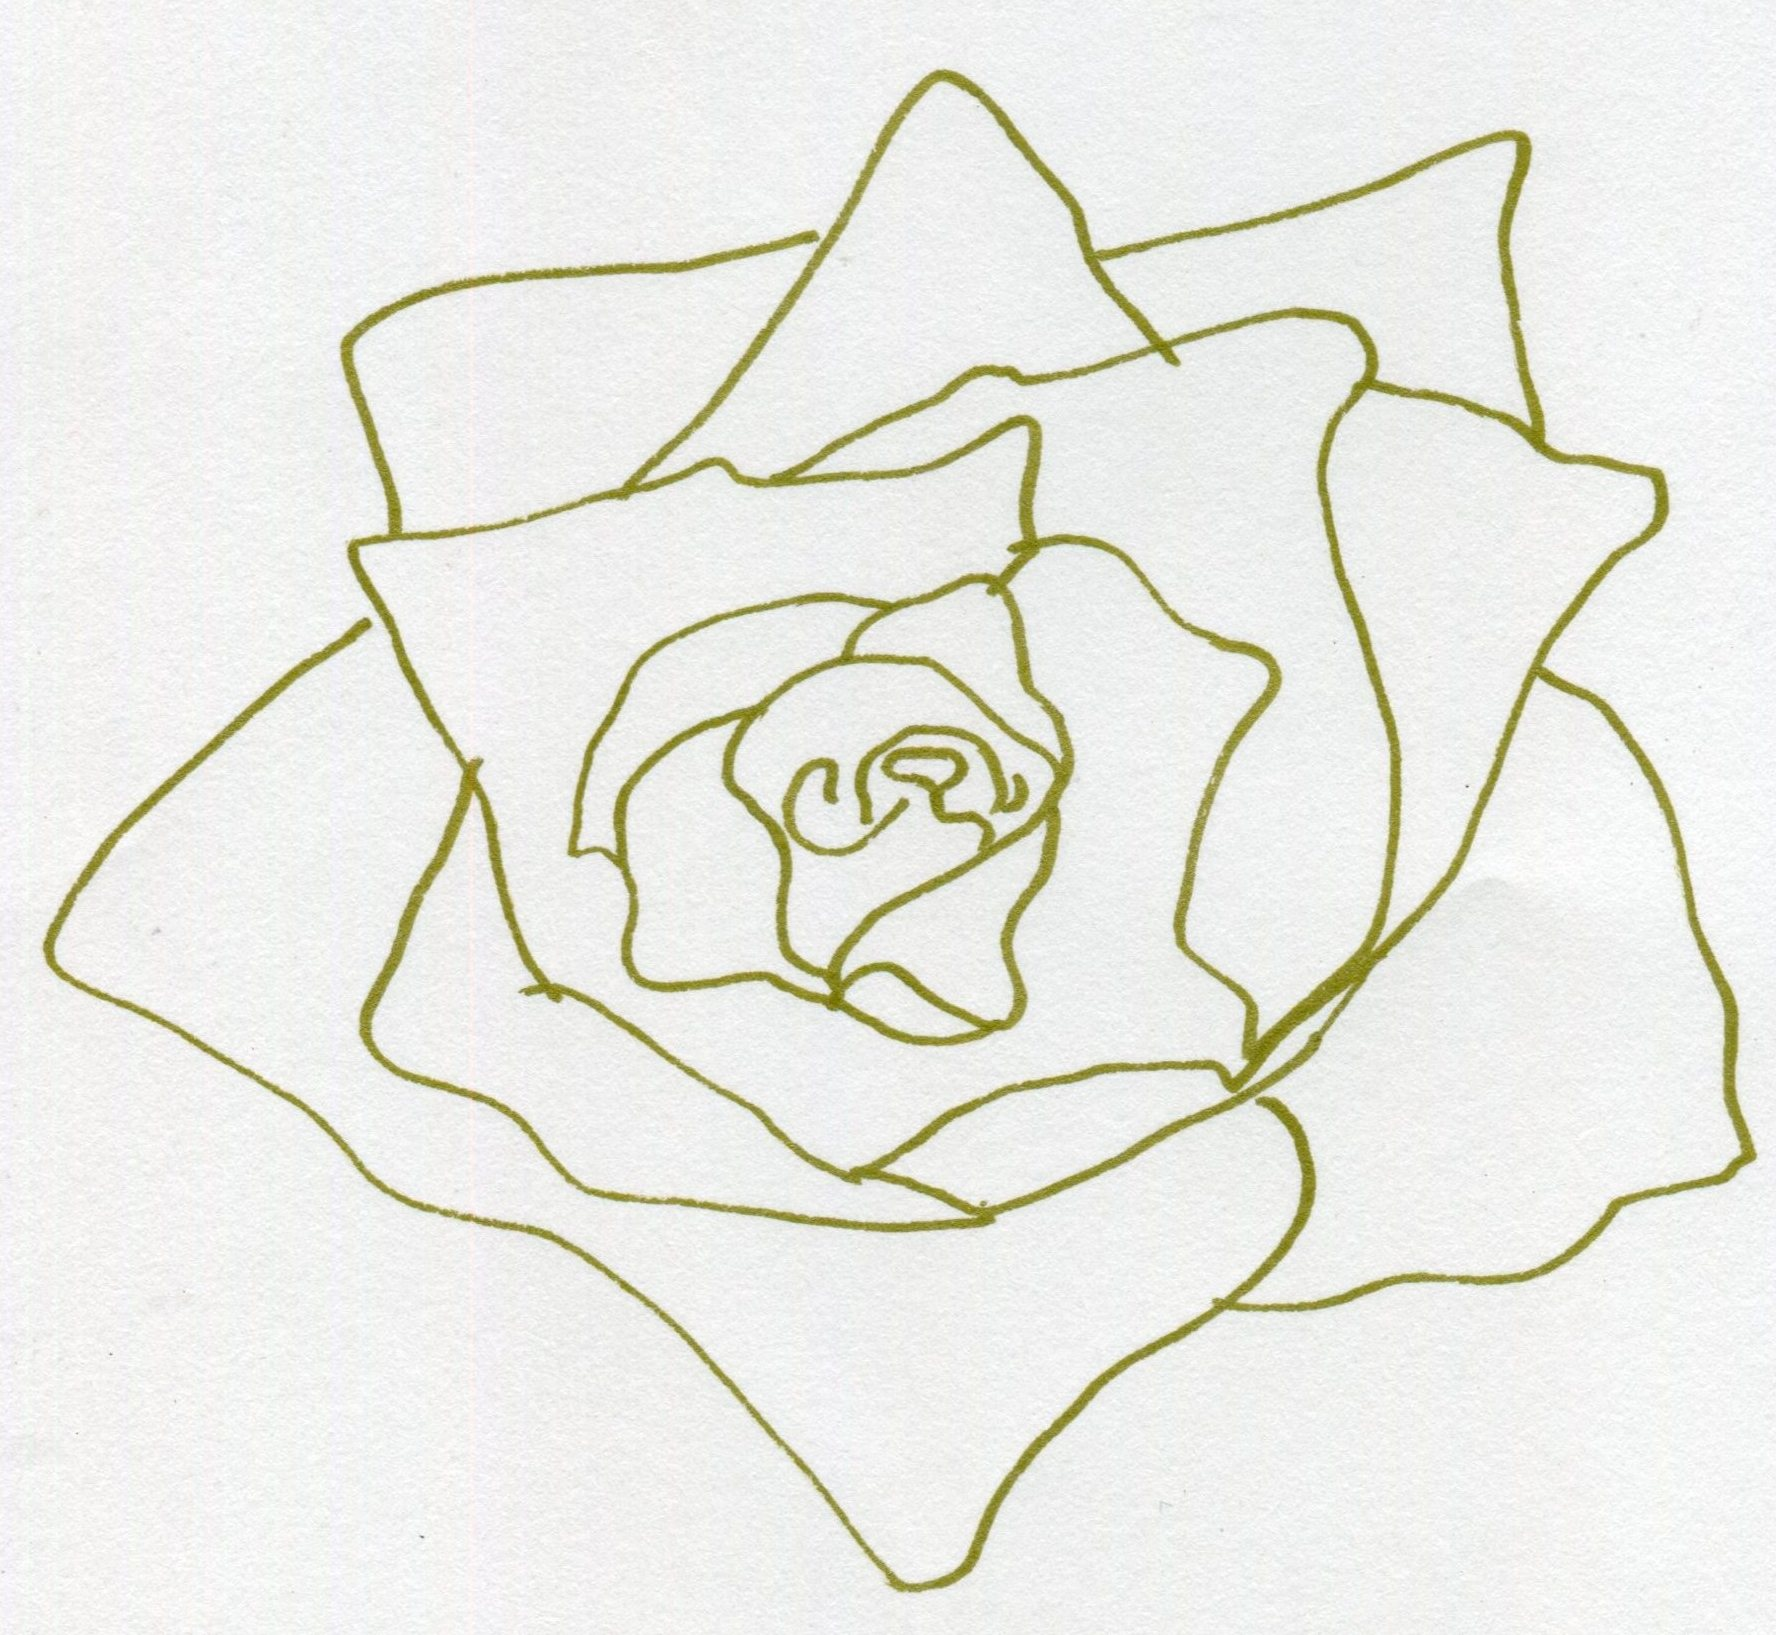 #14: HEART OF THE ROSE (DRAWING — BONUS)